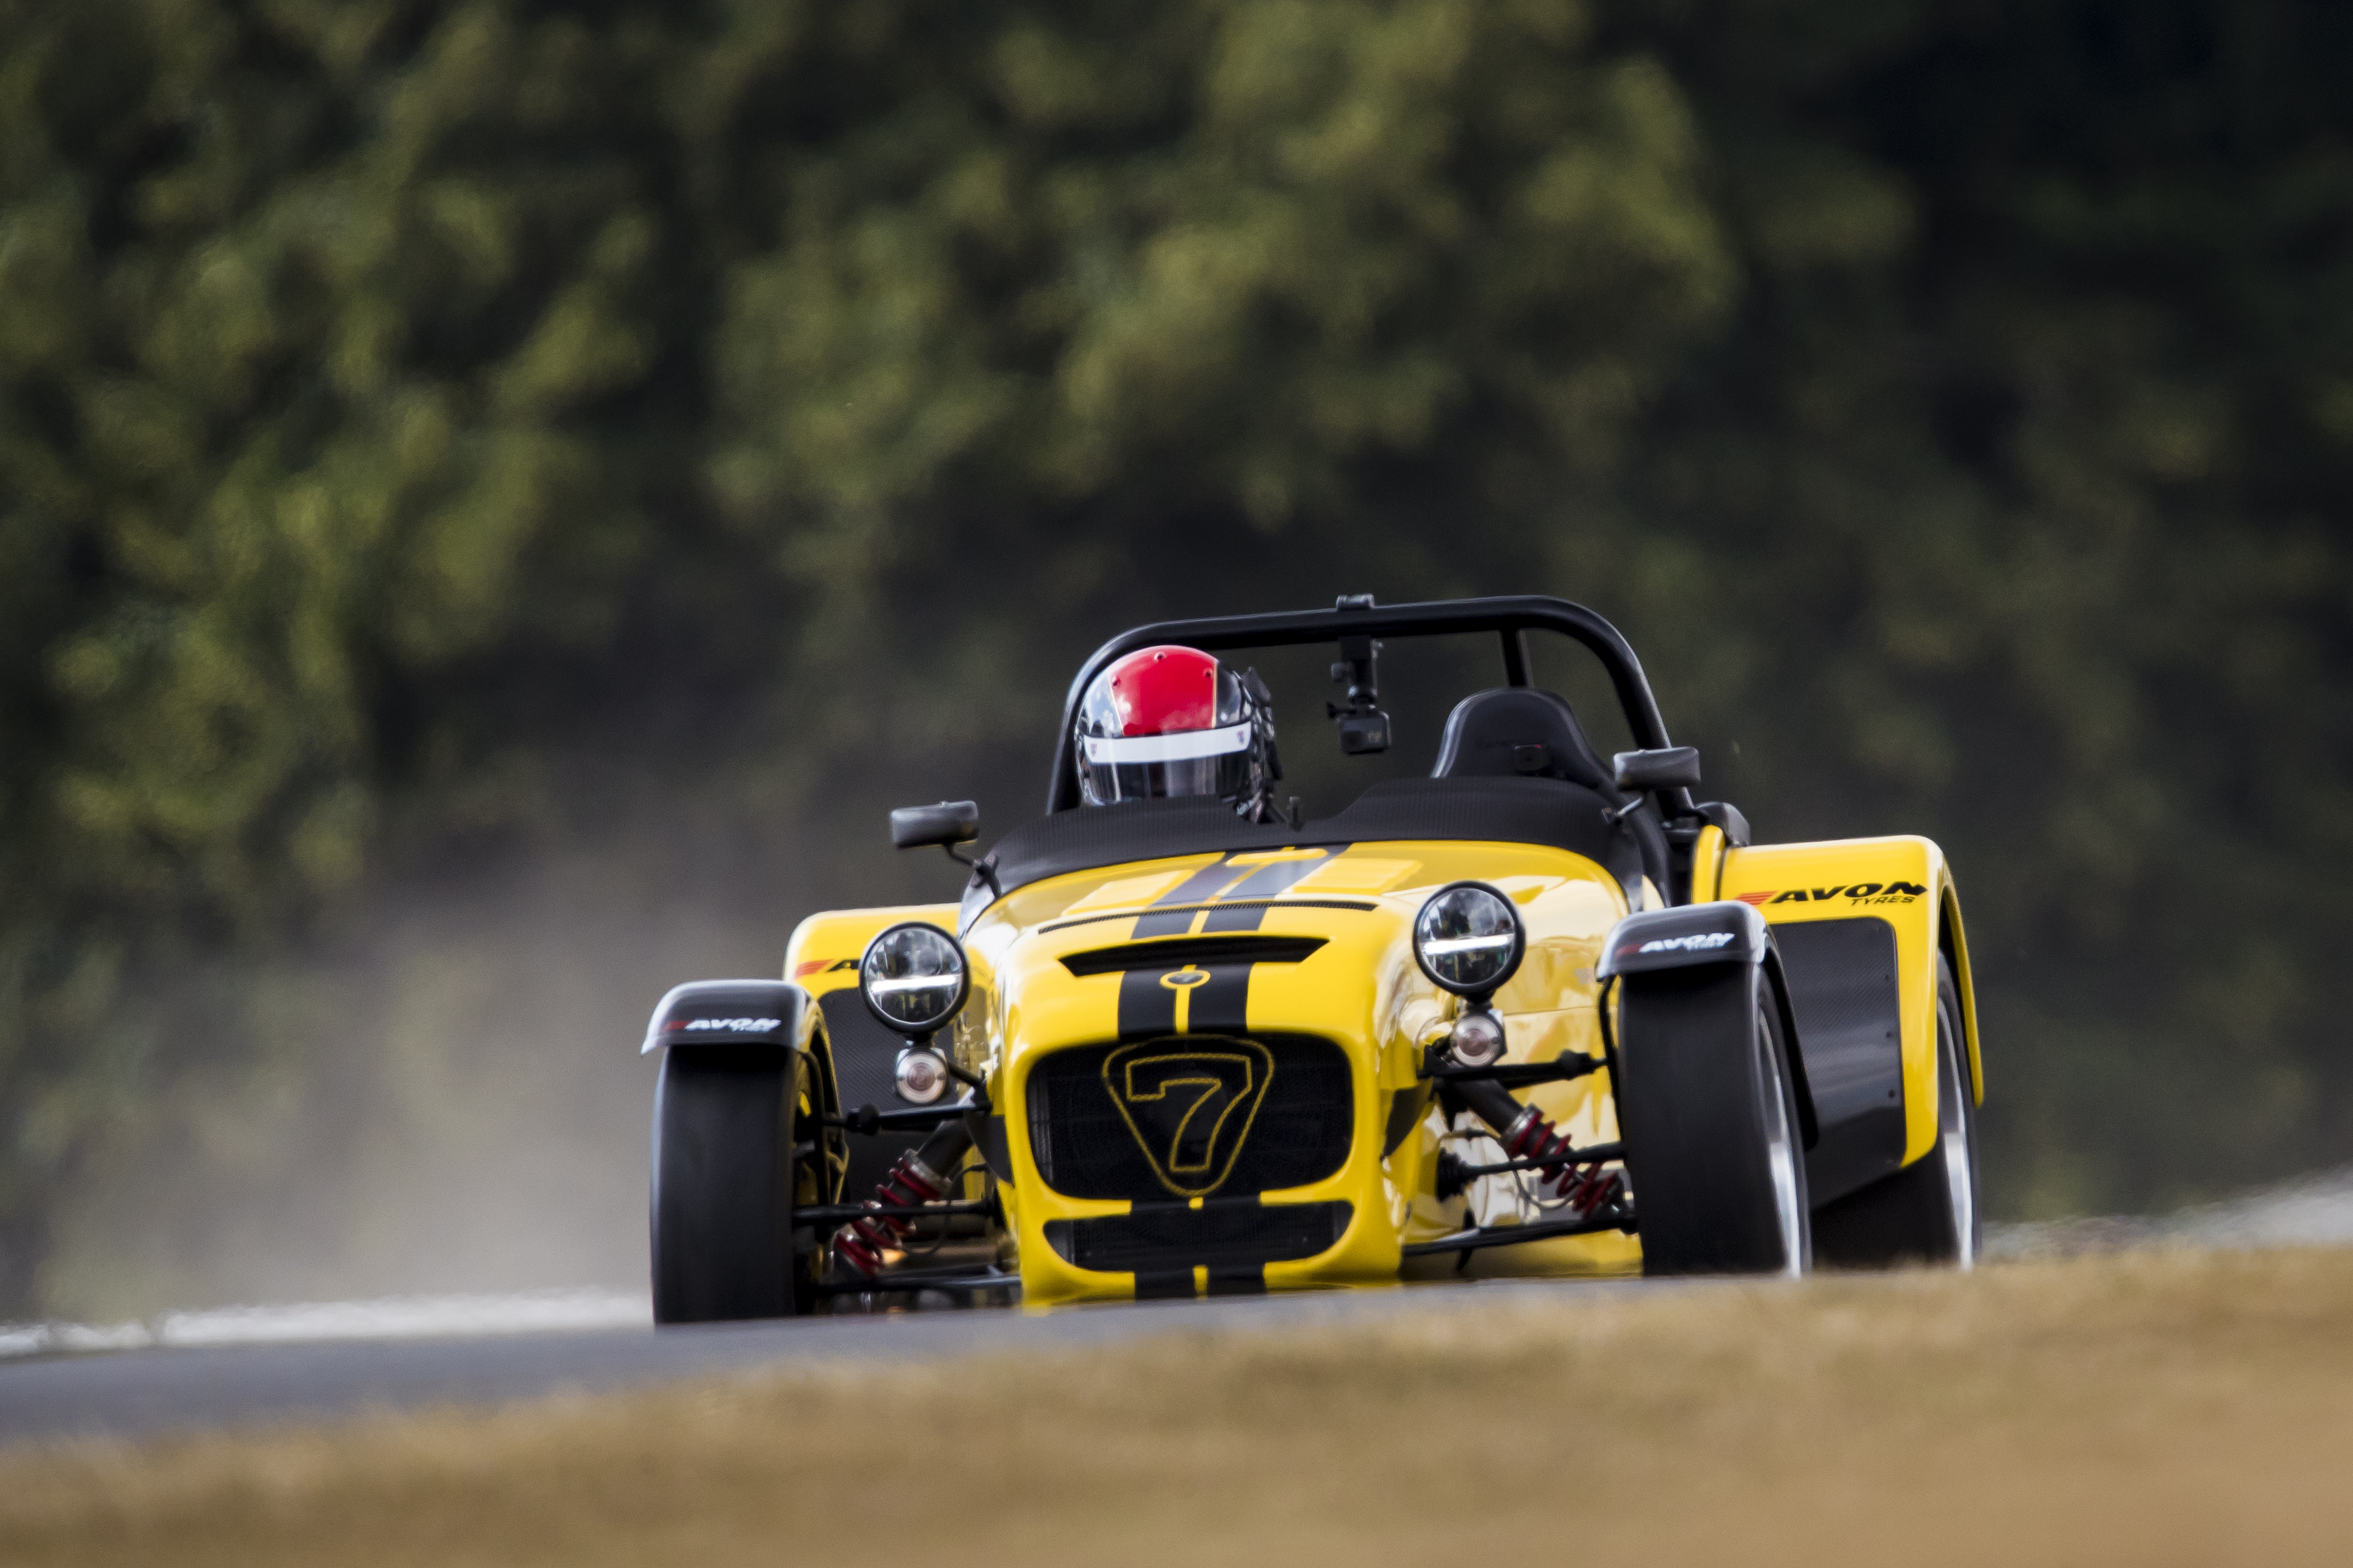 Catch Caterham at CarFest South 2019